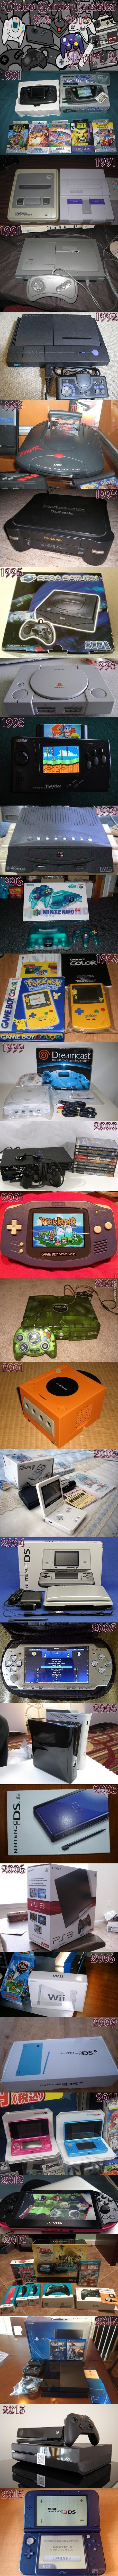 A Short History Of Consoles Part 2